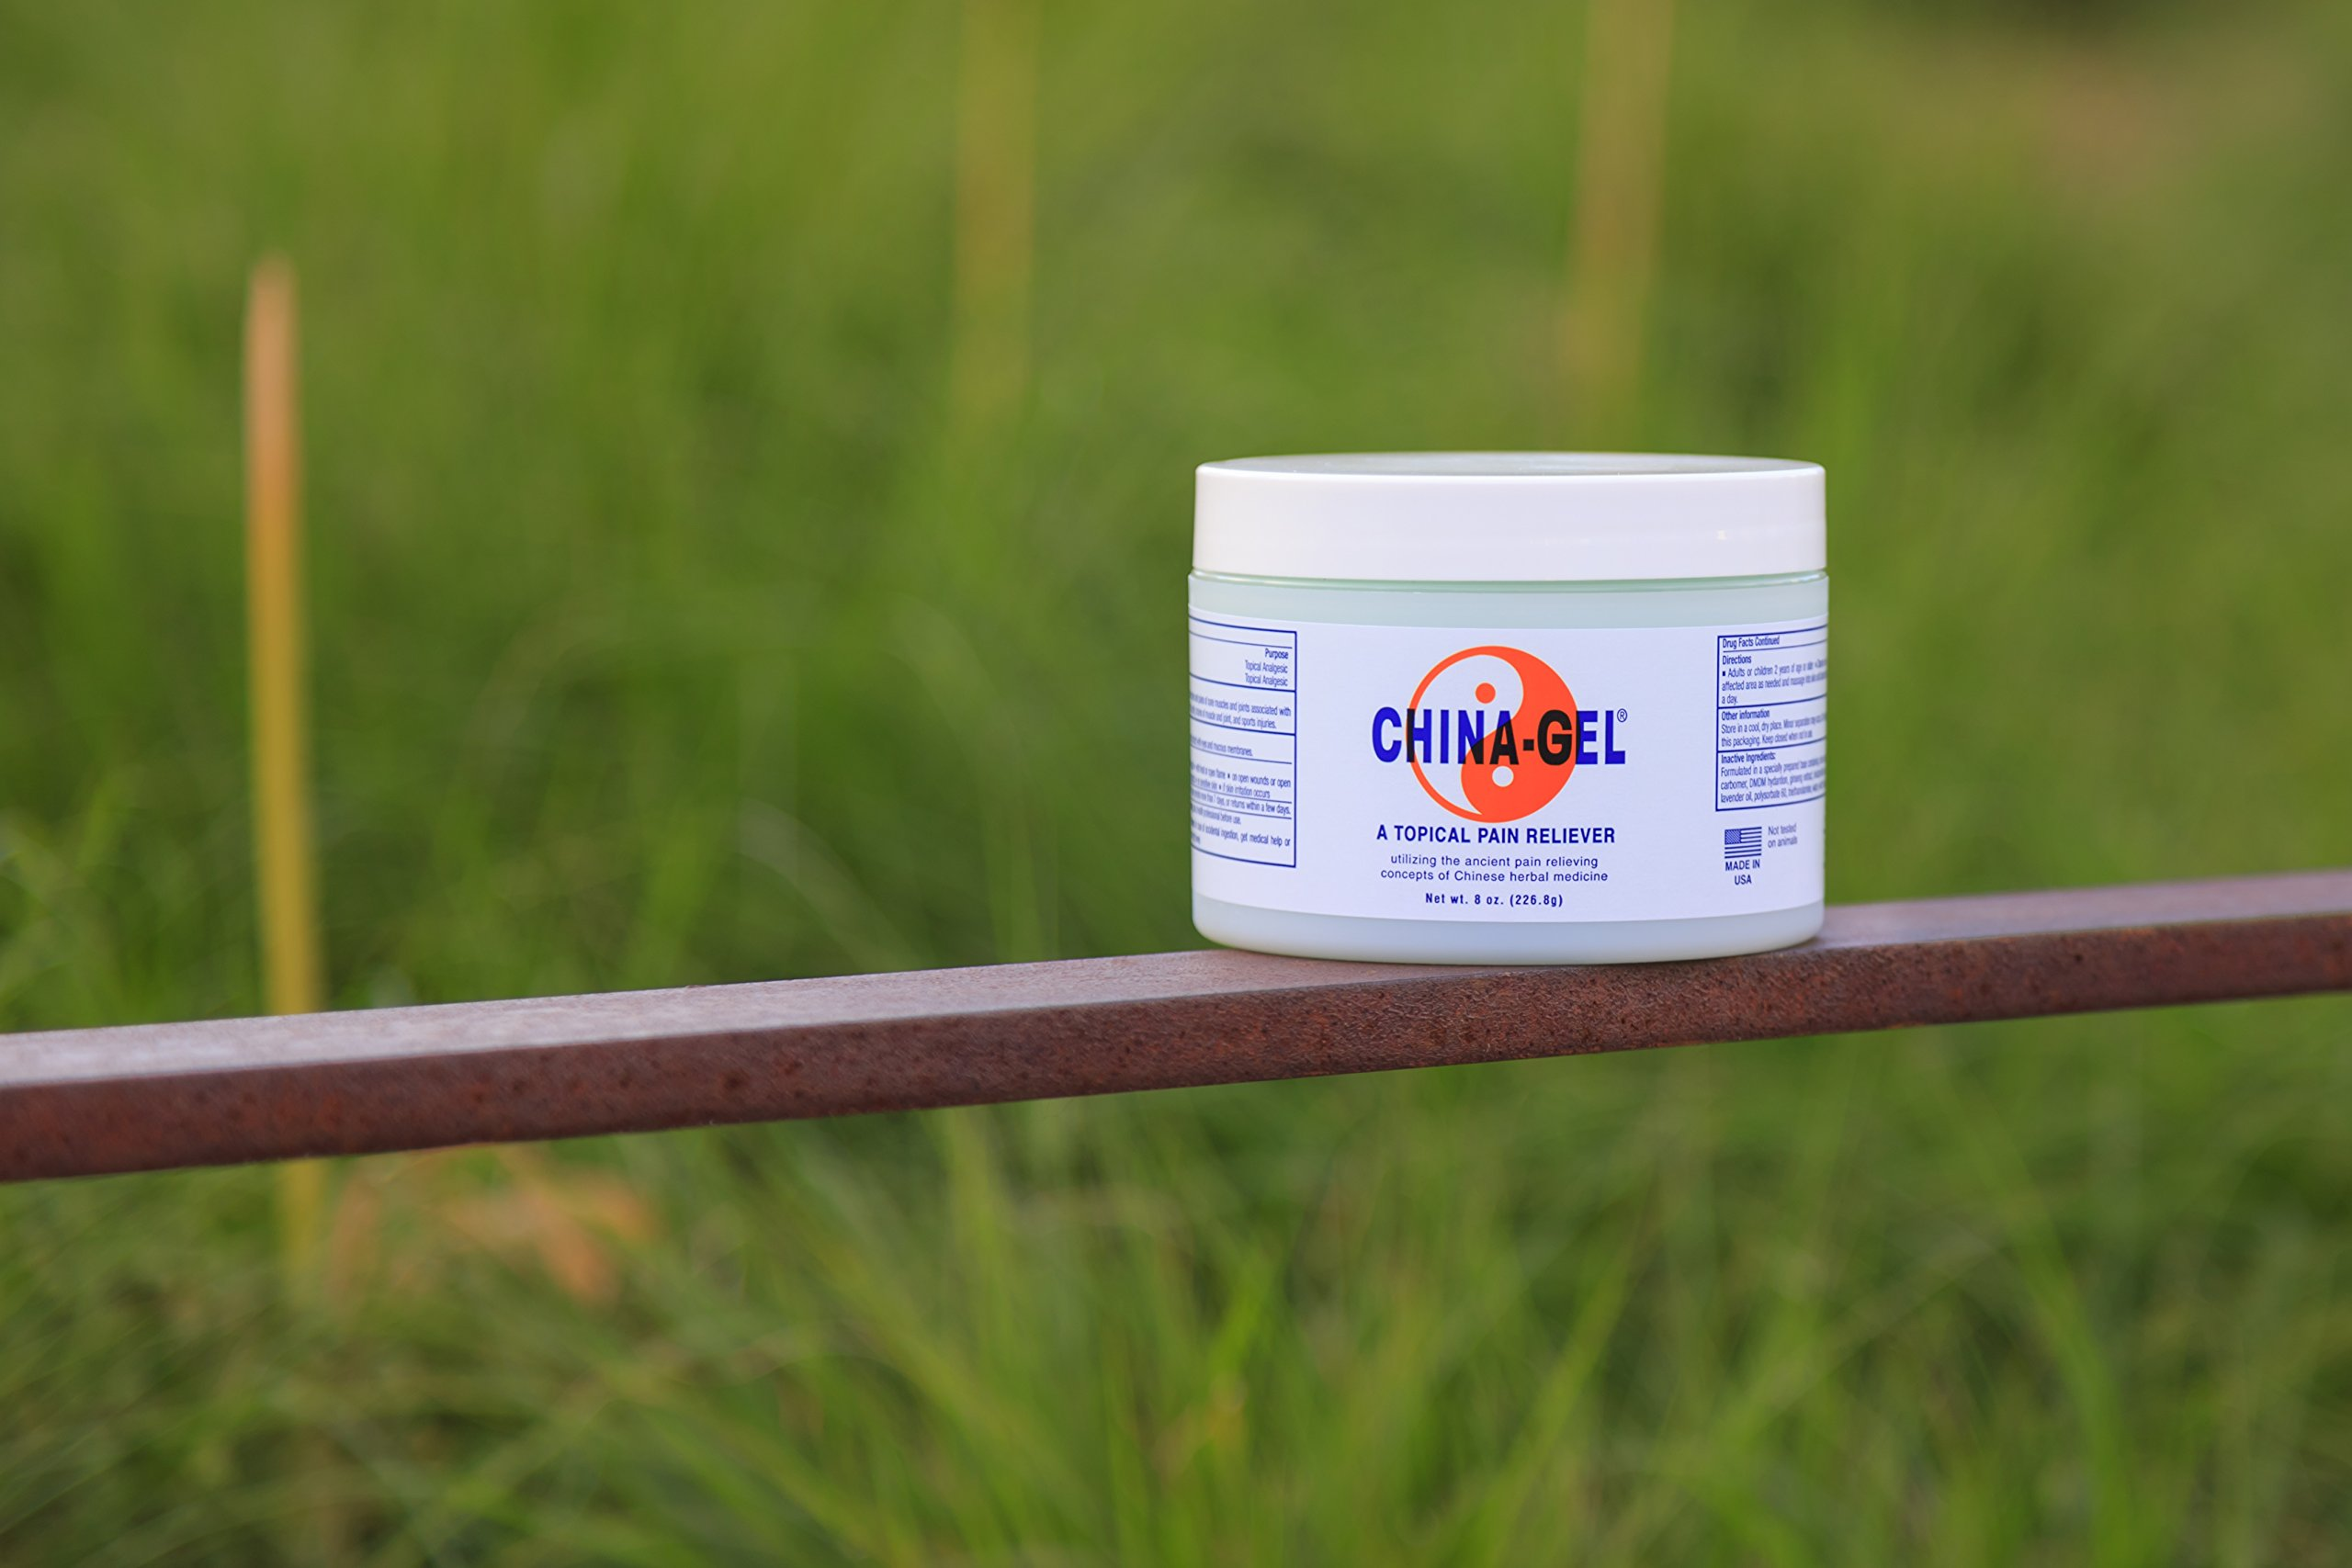 China-Gel - Topical Pain Reliever, 8 oz.